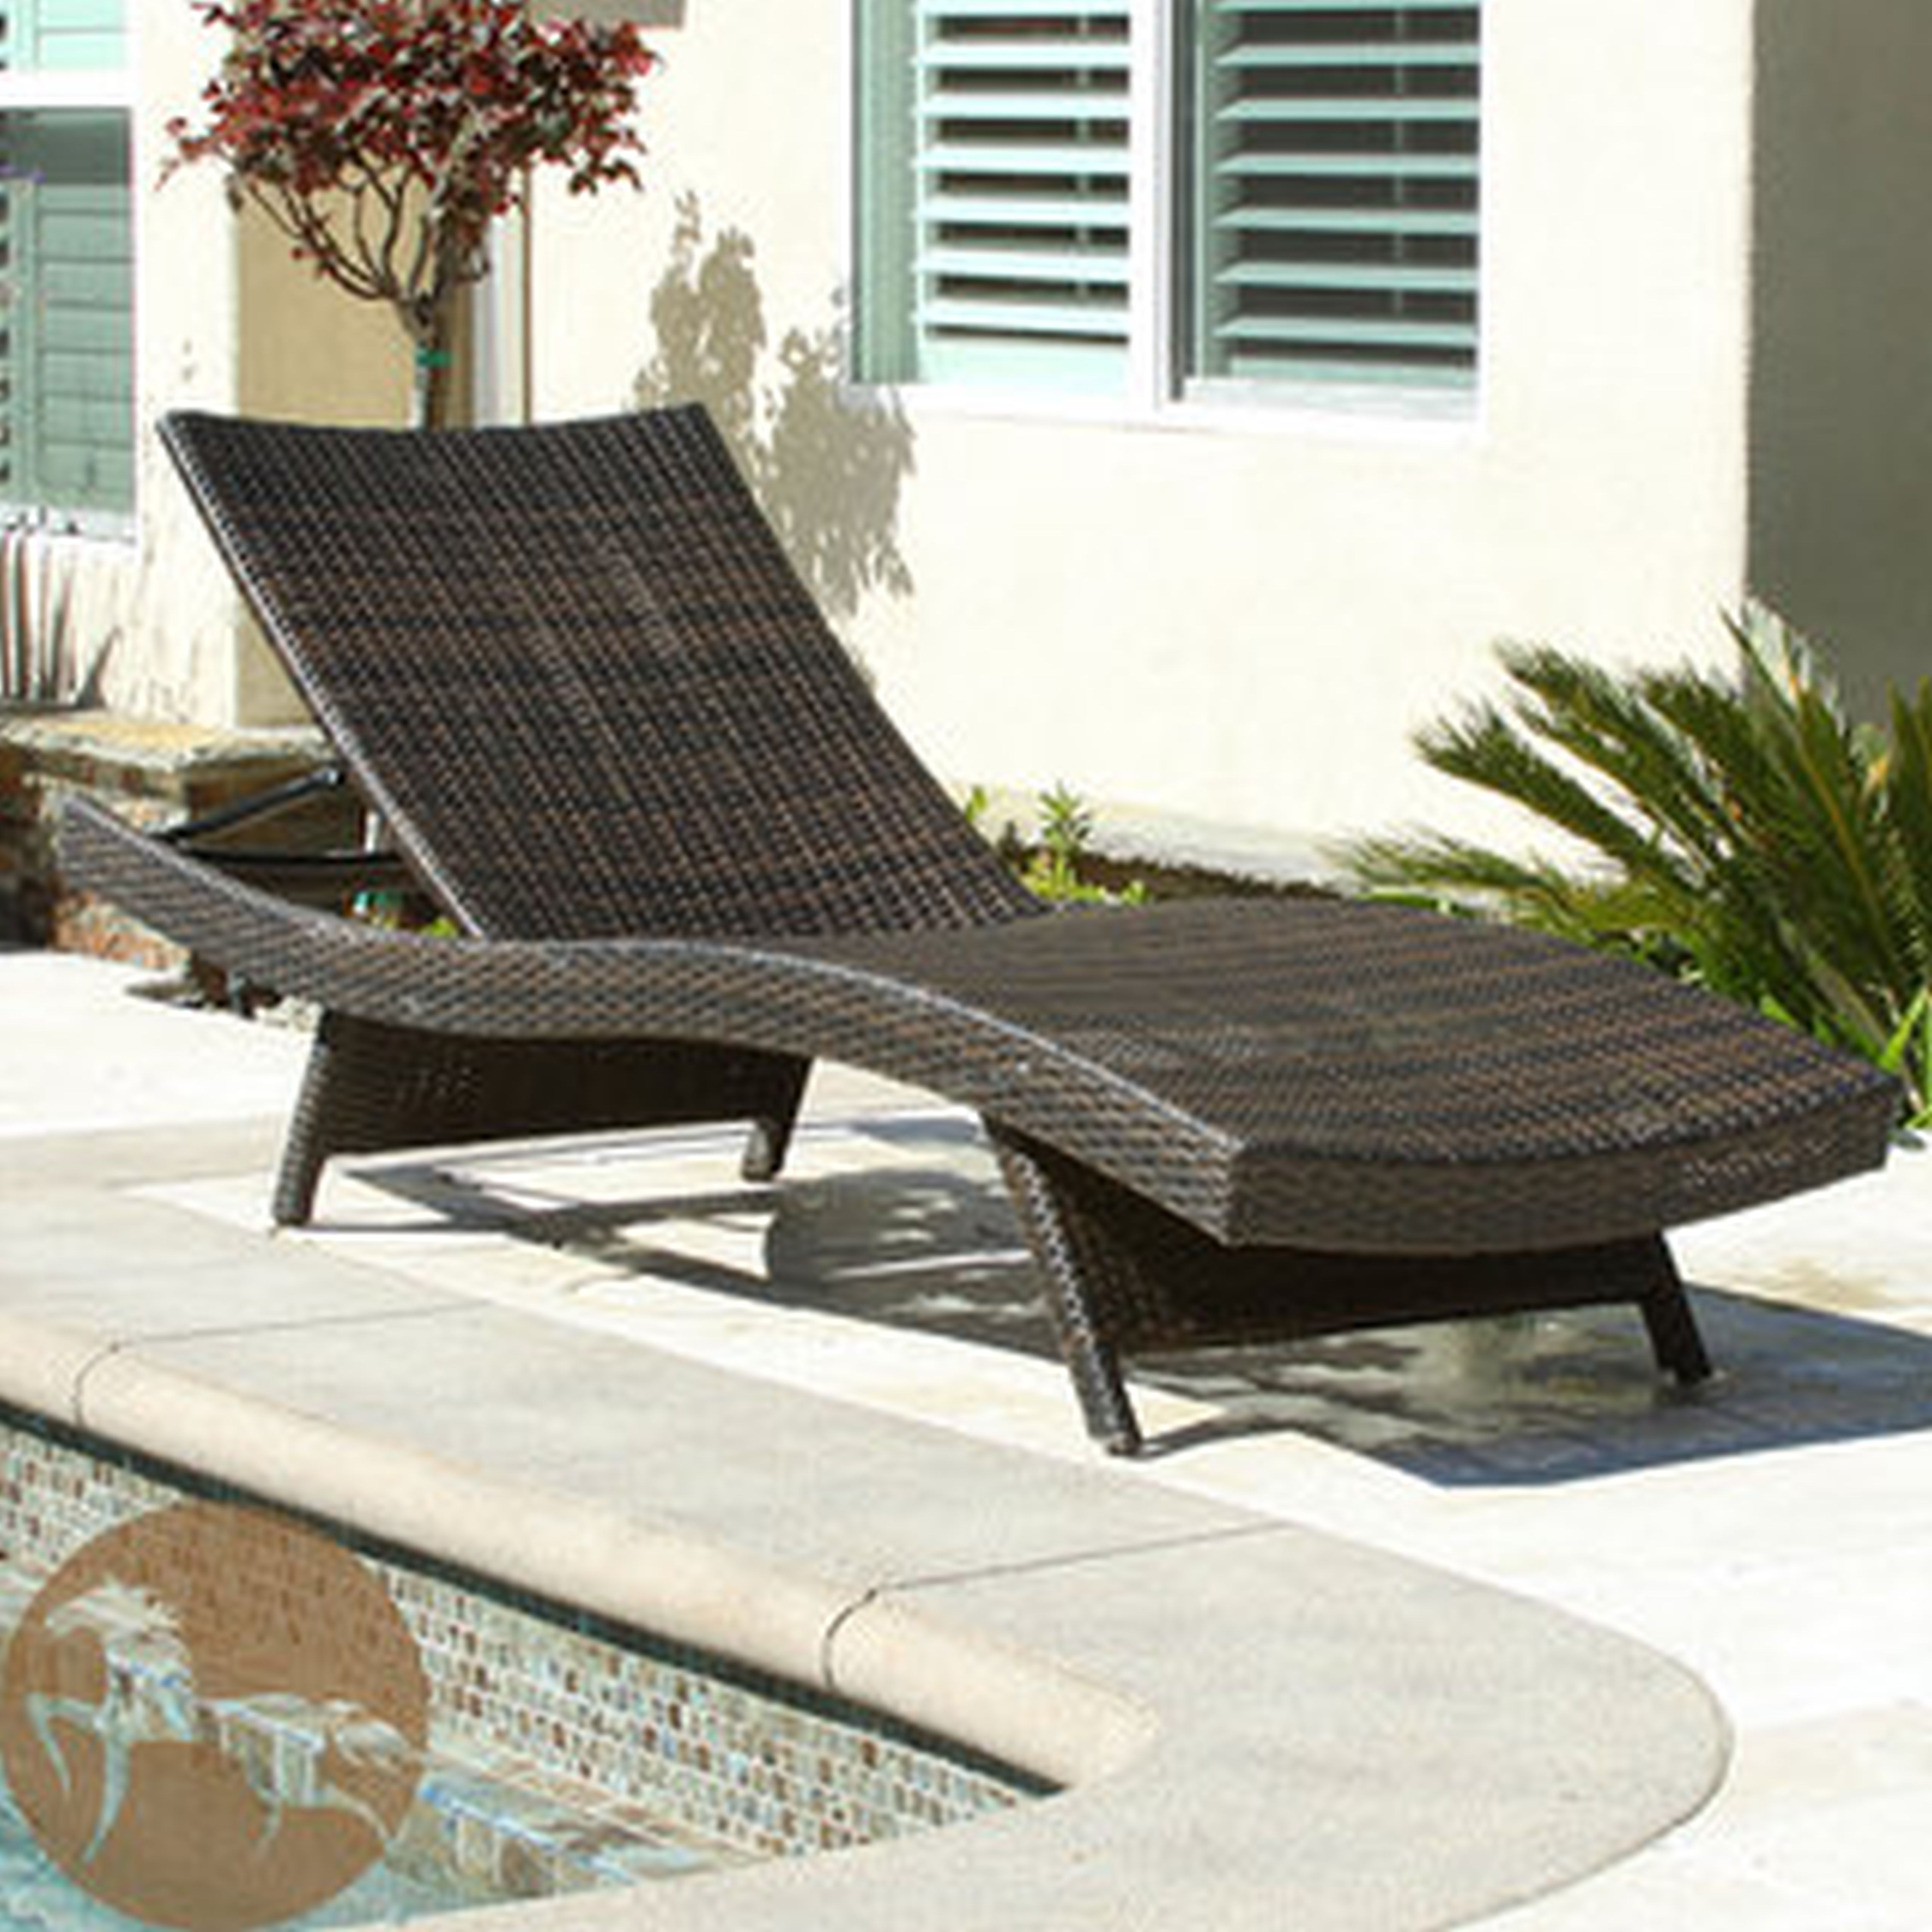 Walmart Outdoor Chaise Lounges In Newest Outdoor : Commercial Chaise Lounge Chairs Double Chaise Lounge (View 11 of 15)